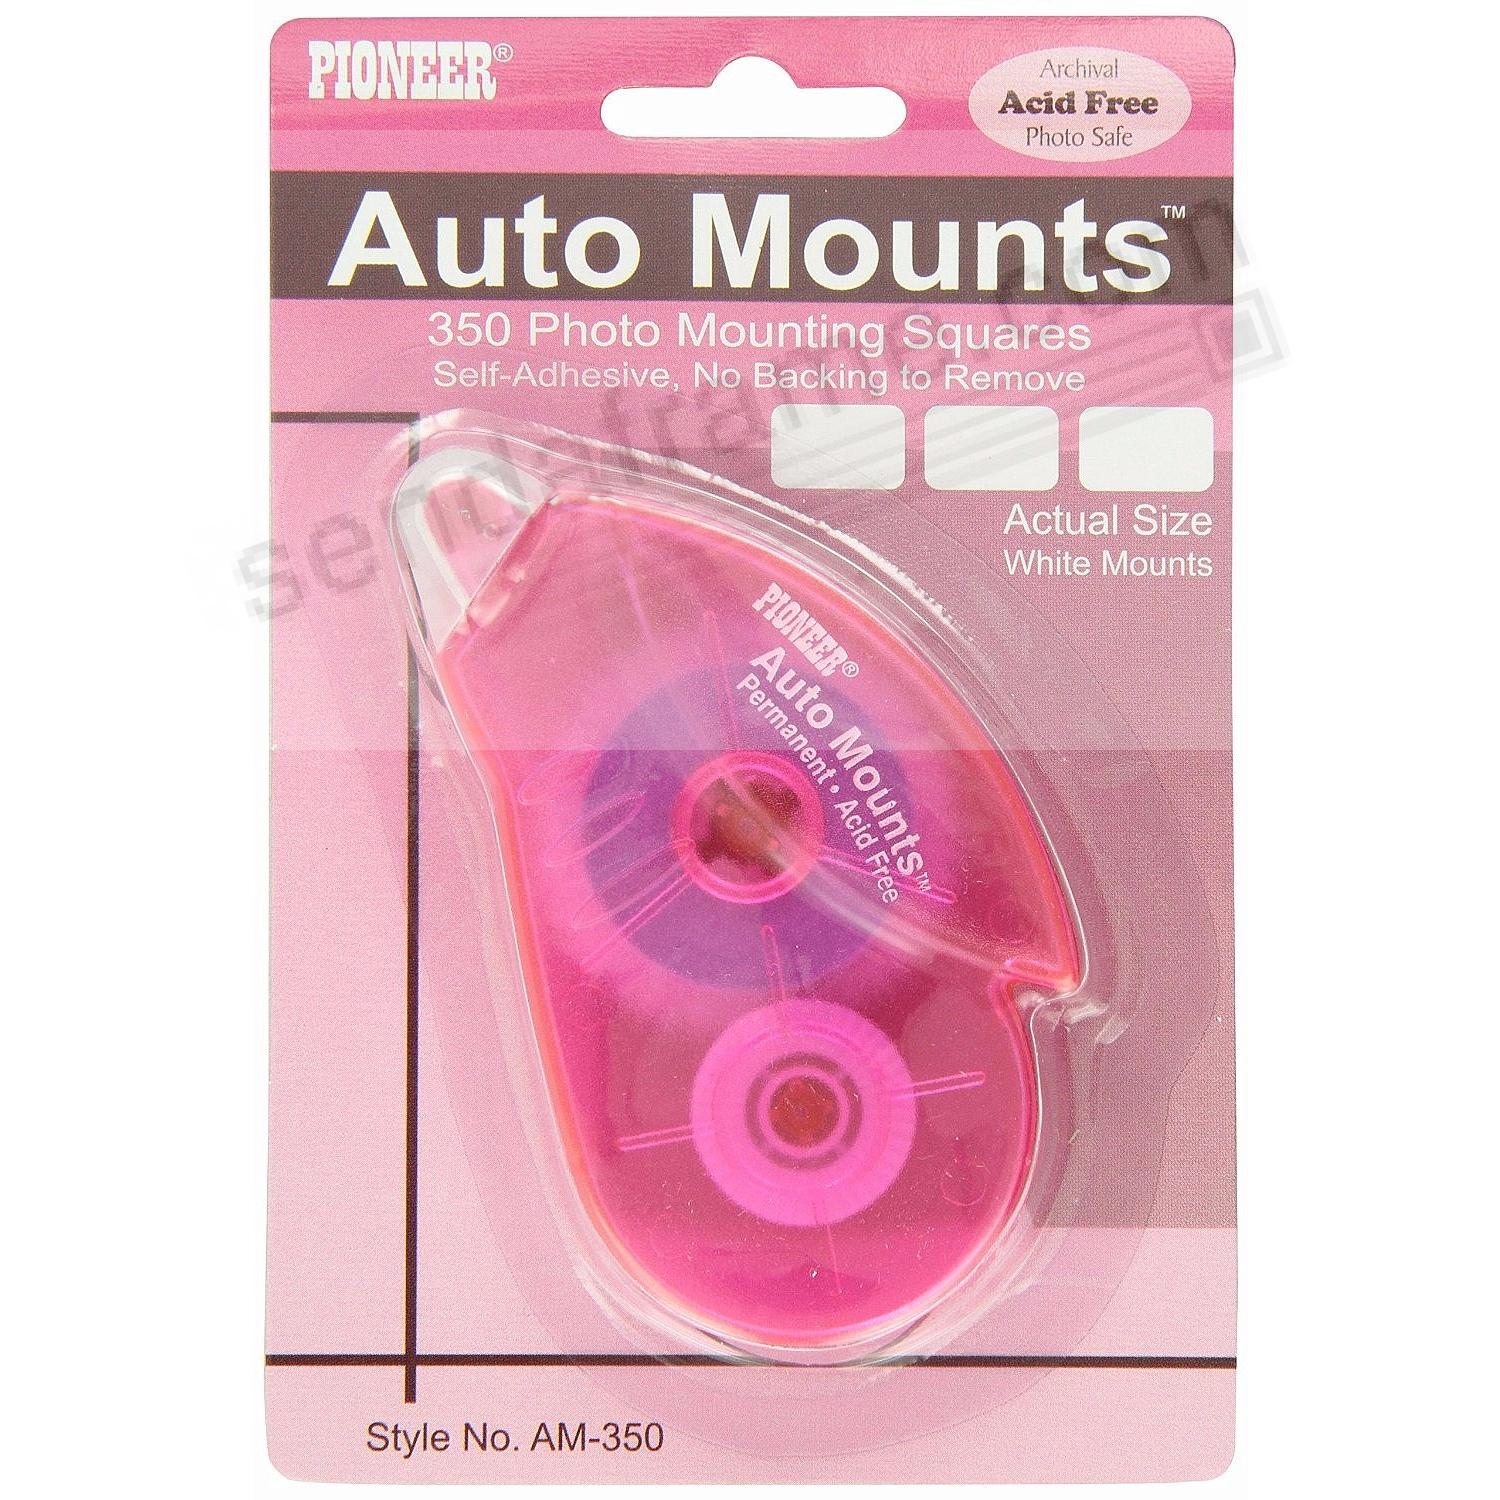 White Auto-Mounts in pink tape runner - the hi-tech way to prepare your album